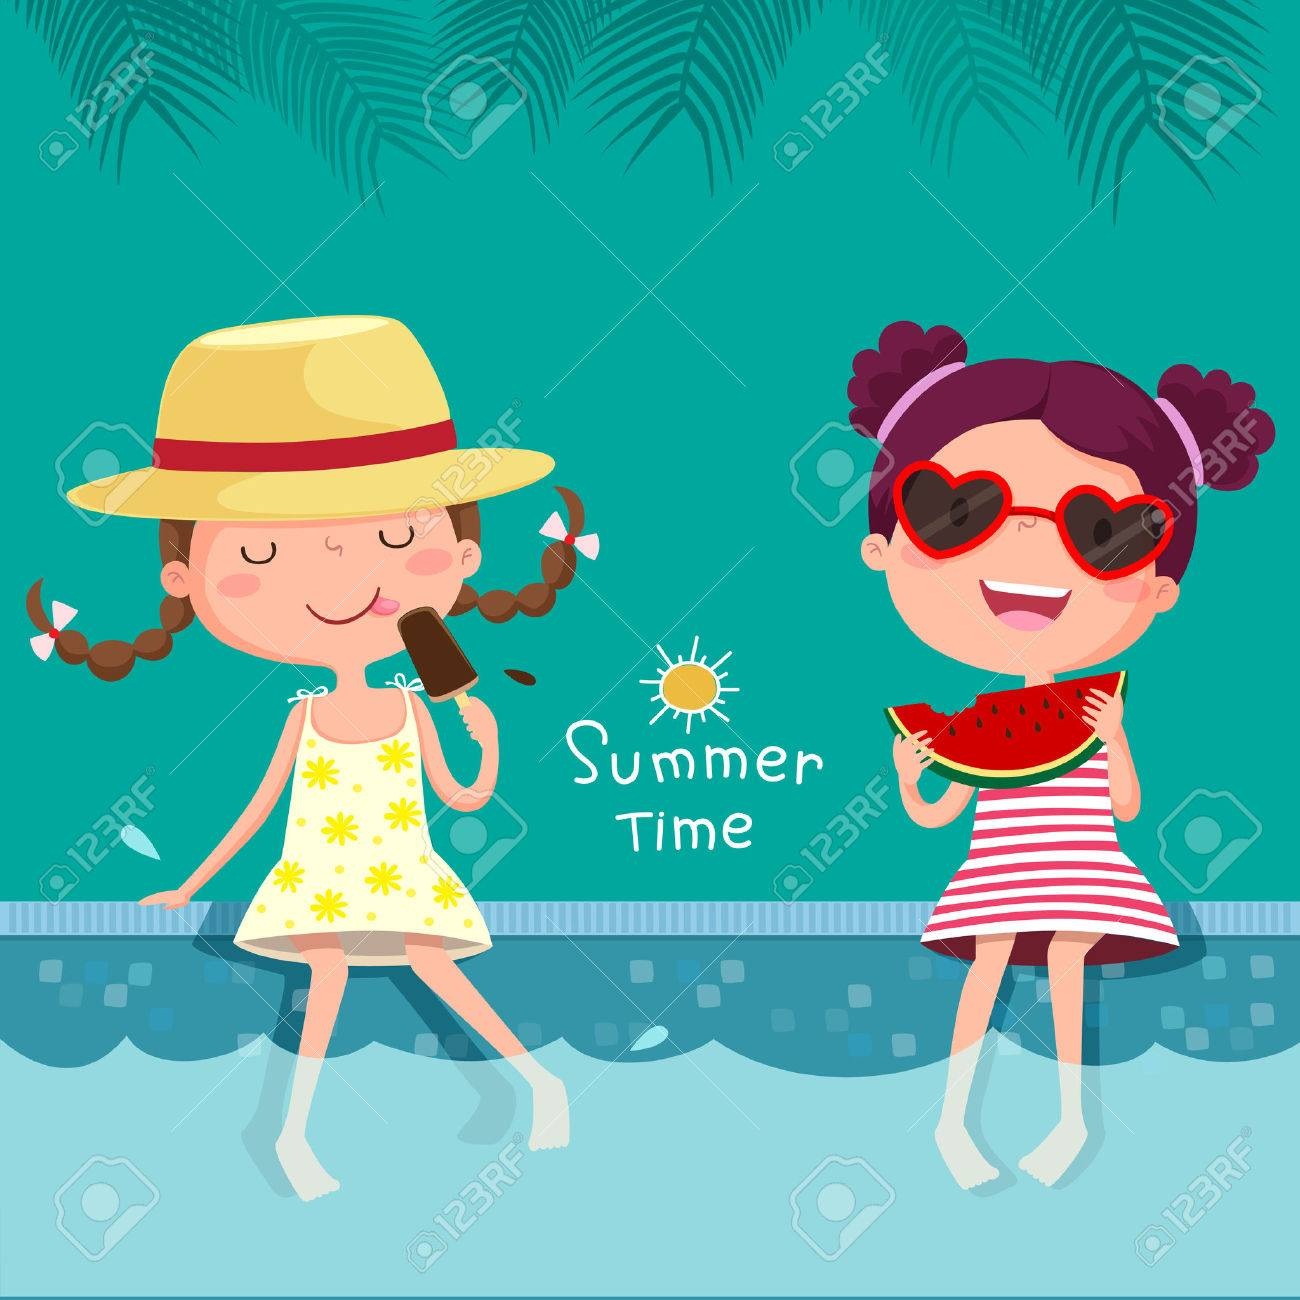 illustration of two girls eating ice cream and watermelon at the pool - 57156988